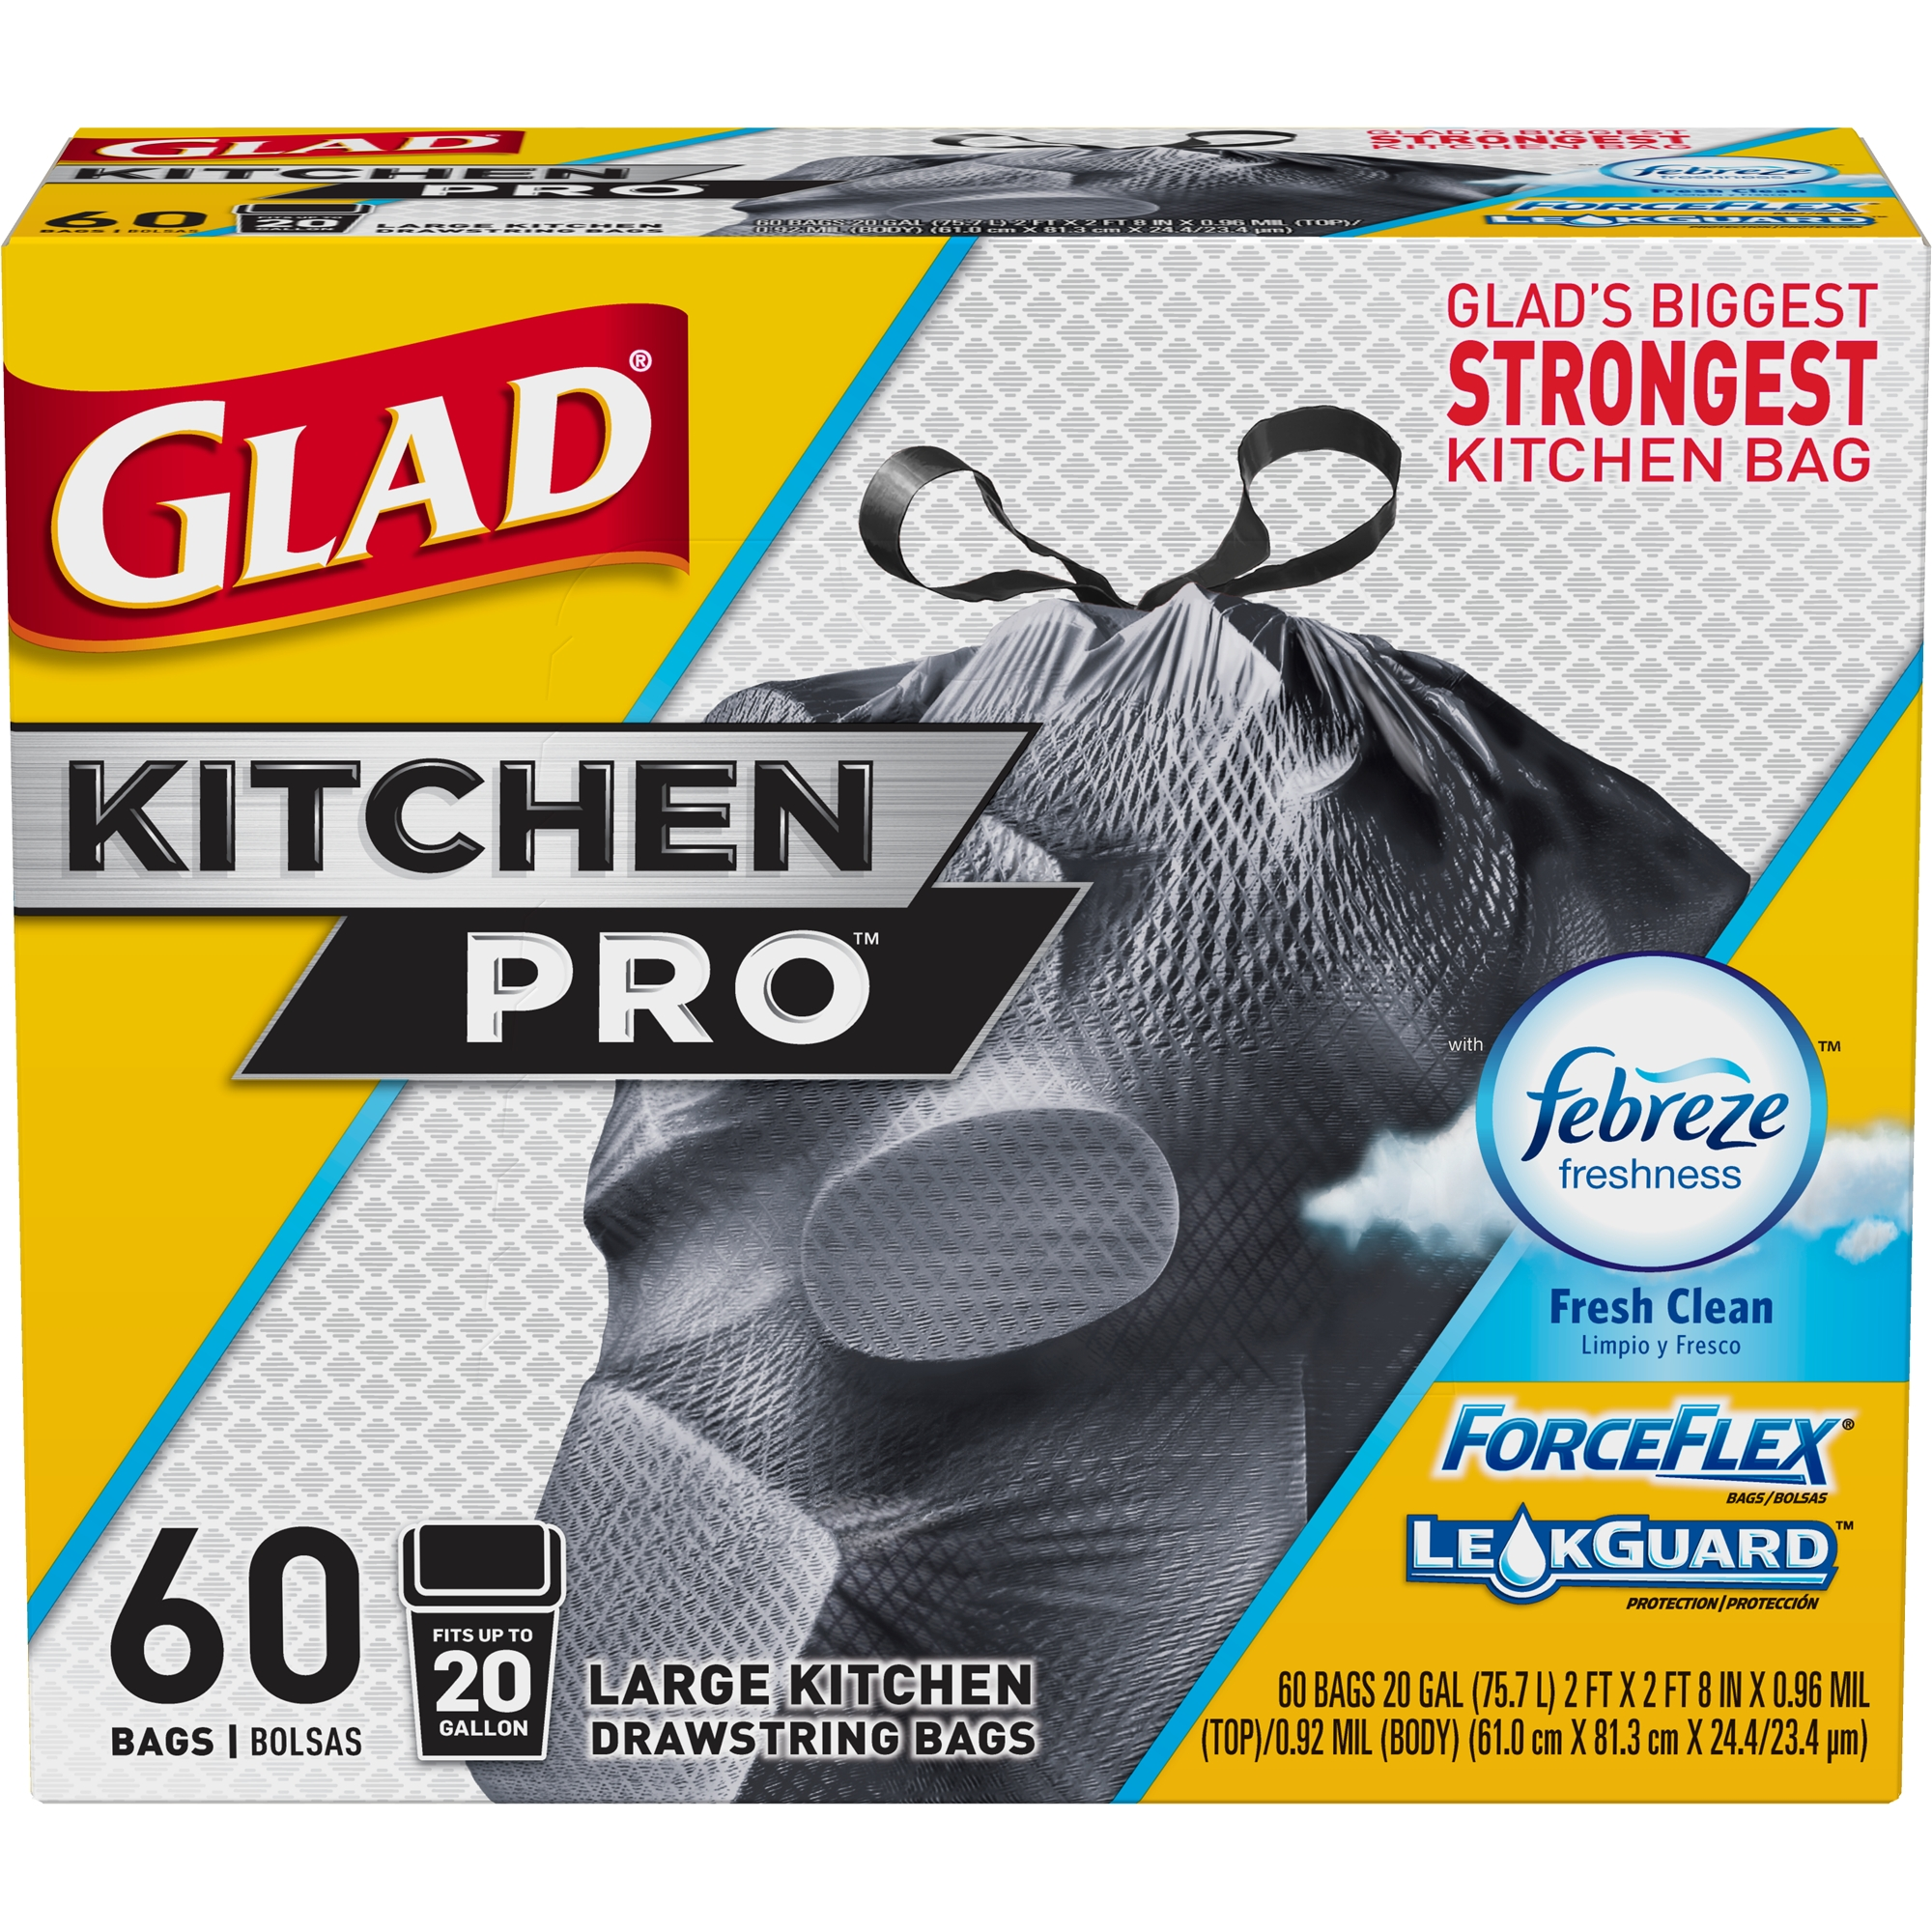 Glad Forceflex Kitchen Pro Drawstring Trash Bags - Febreze Fresh Clean - 20 gal - 60 ct